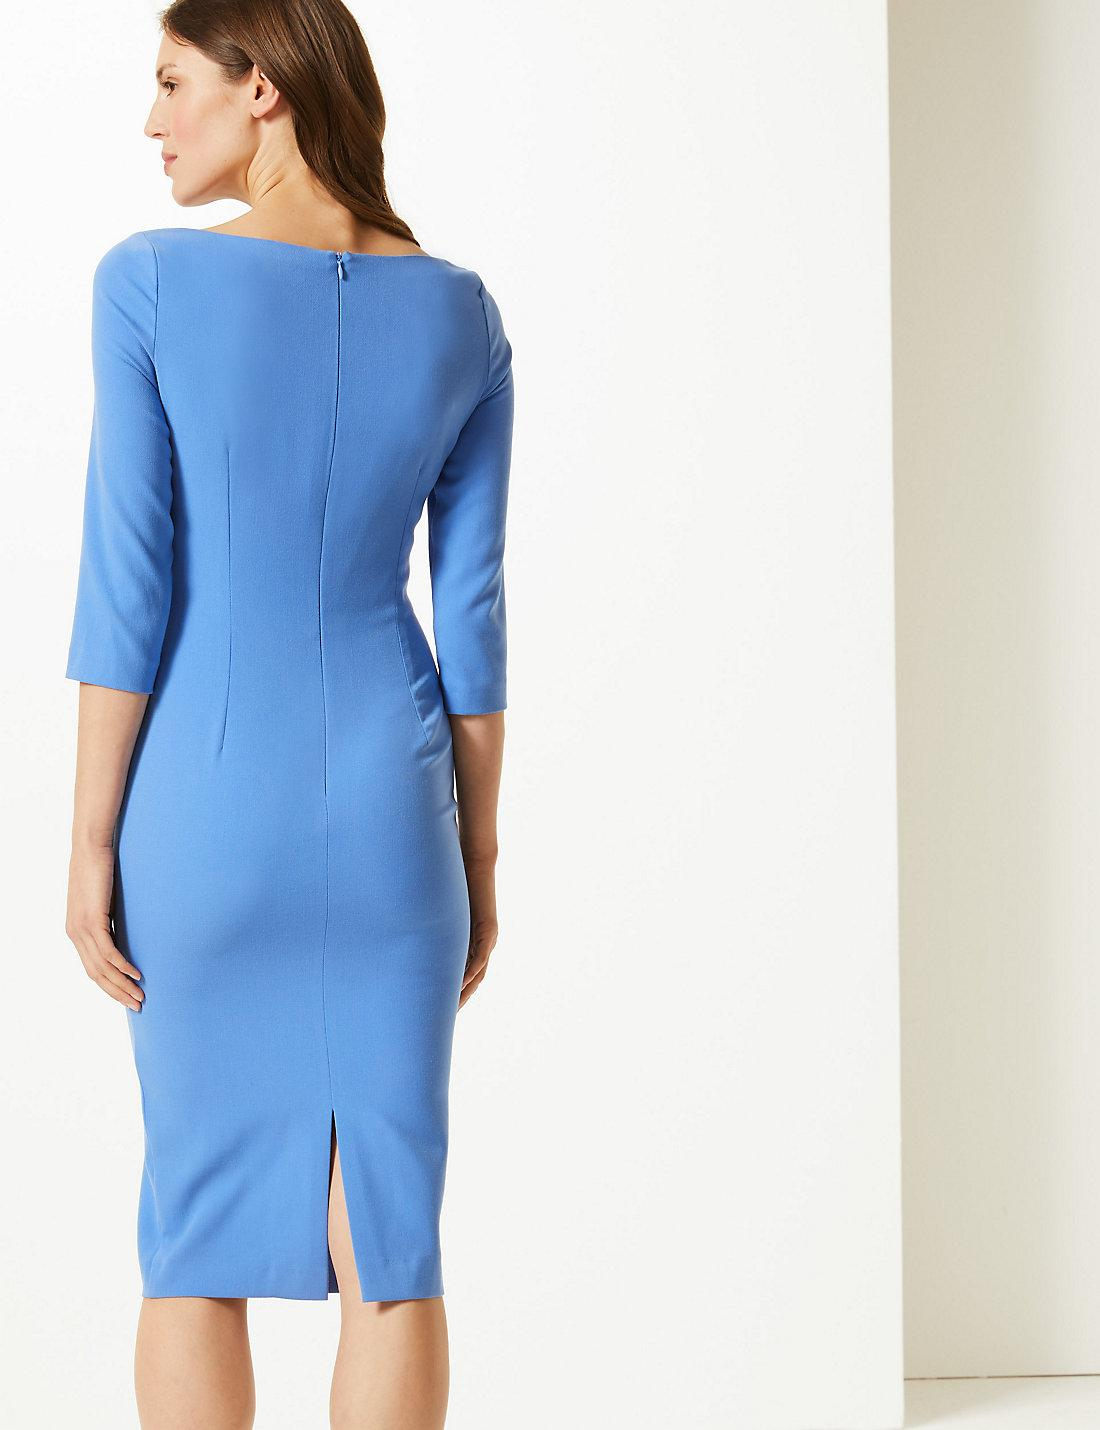 Marks and spencer bodycon dresses for sale